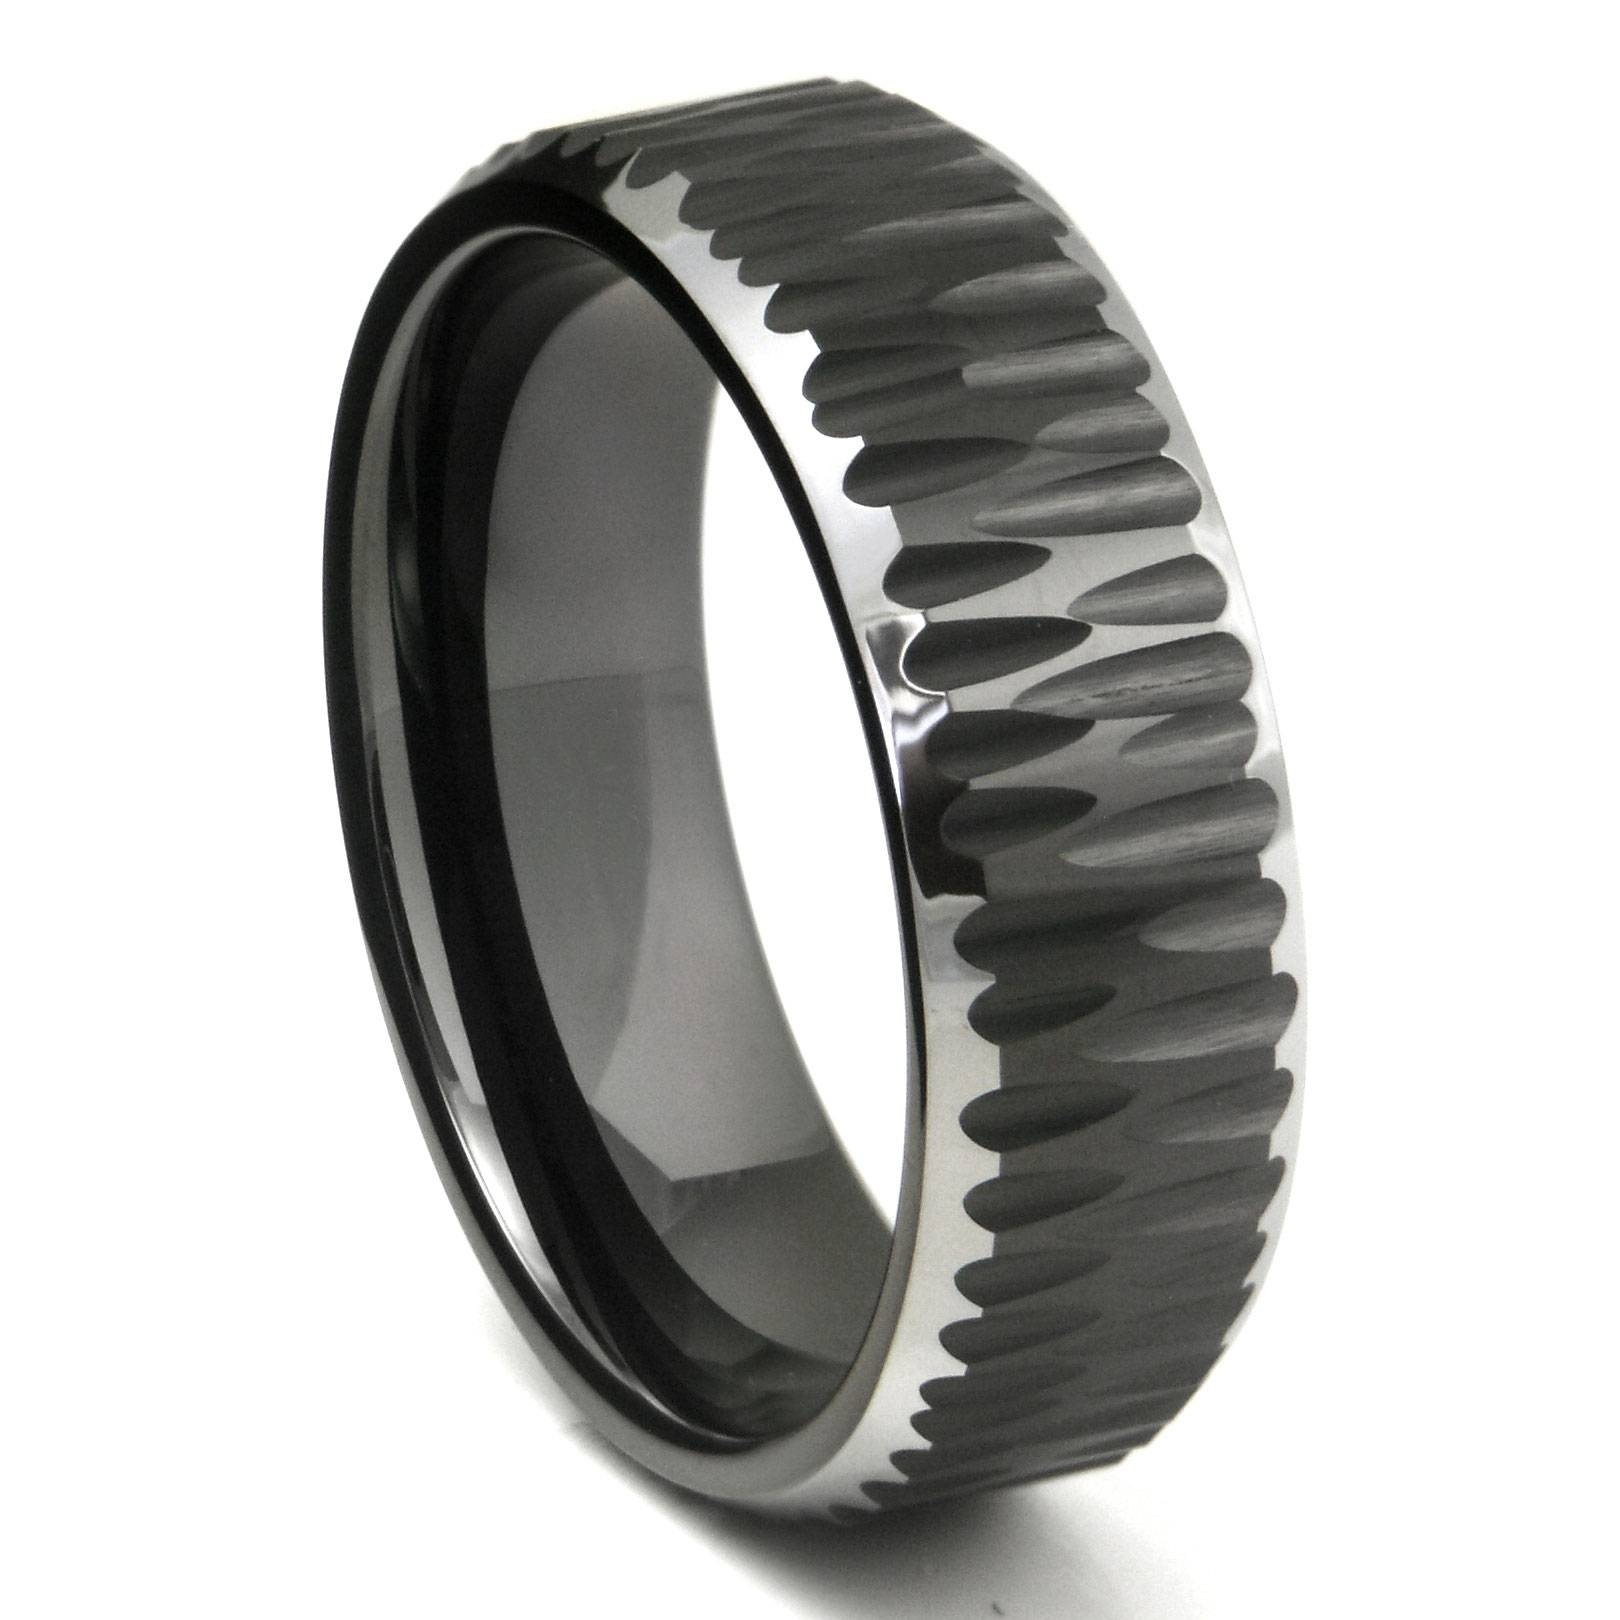 a of band on mens black rings wedding finger what ring bands does mean unique